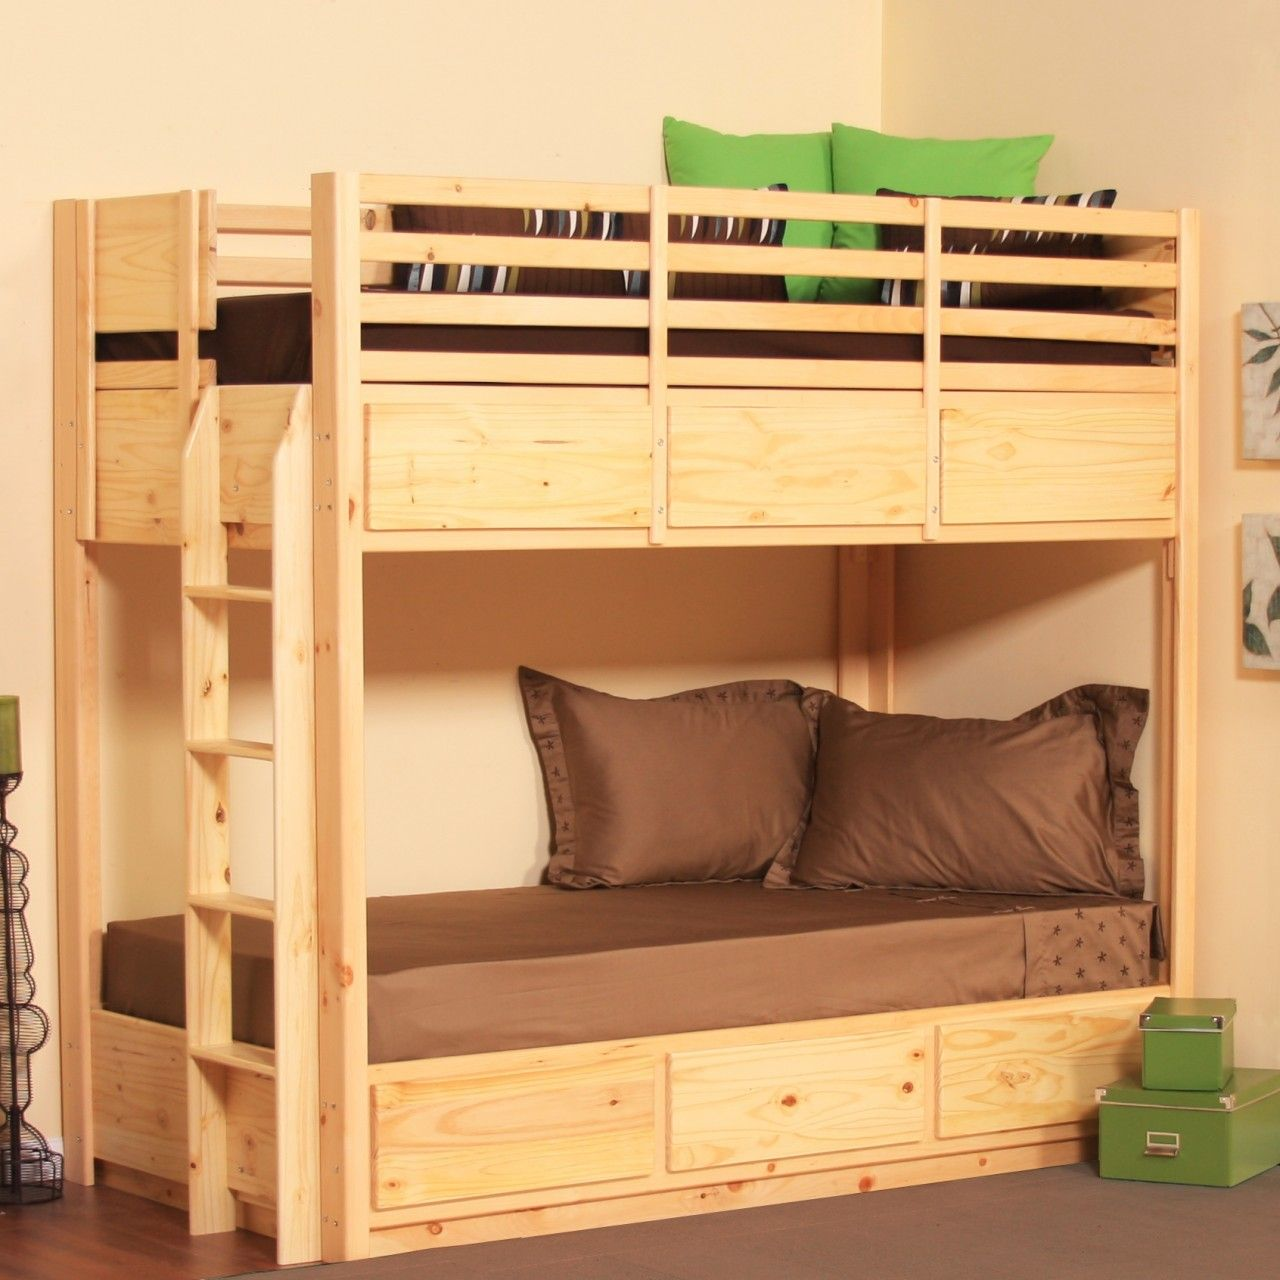 Twin Bunk Bed With 6 Drawers Pine Bunk Beds With Drawers Bunk Bed Designs Bunk Beds With Stairs Bunk beds with drawers underneath